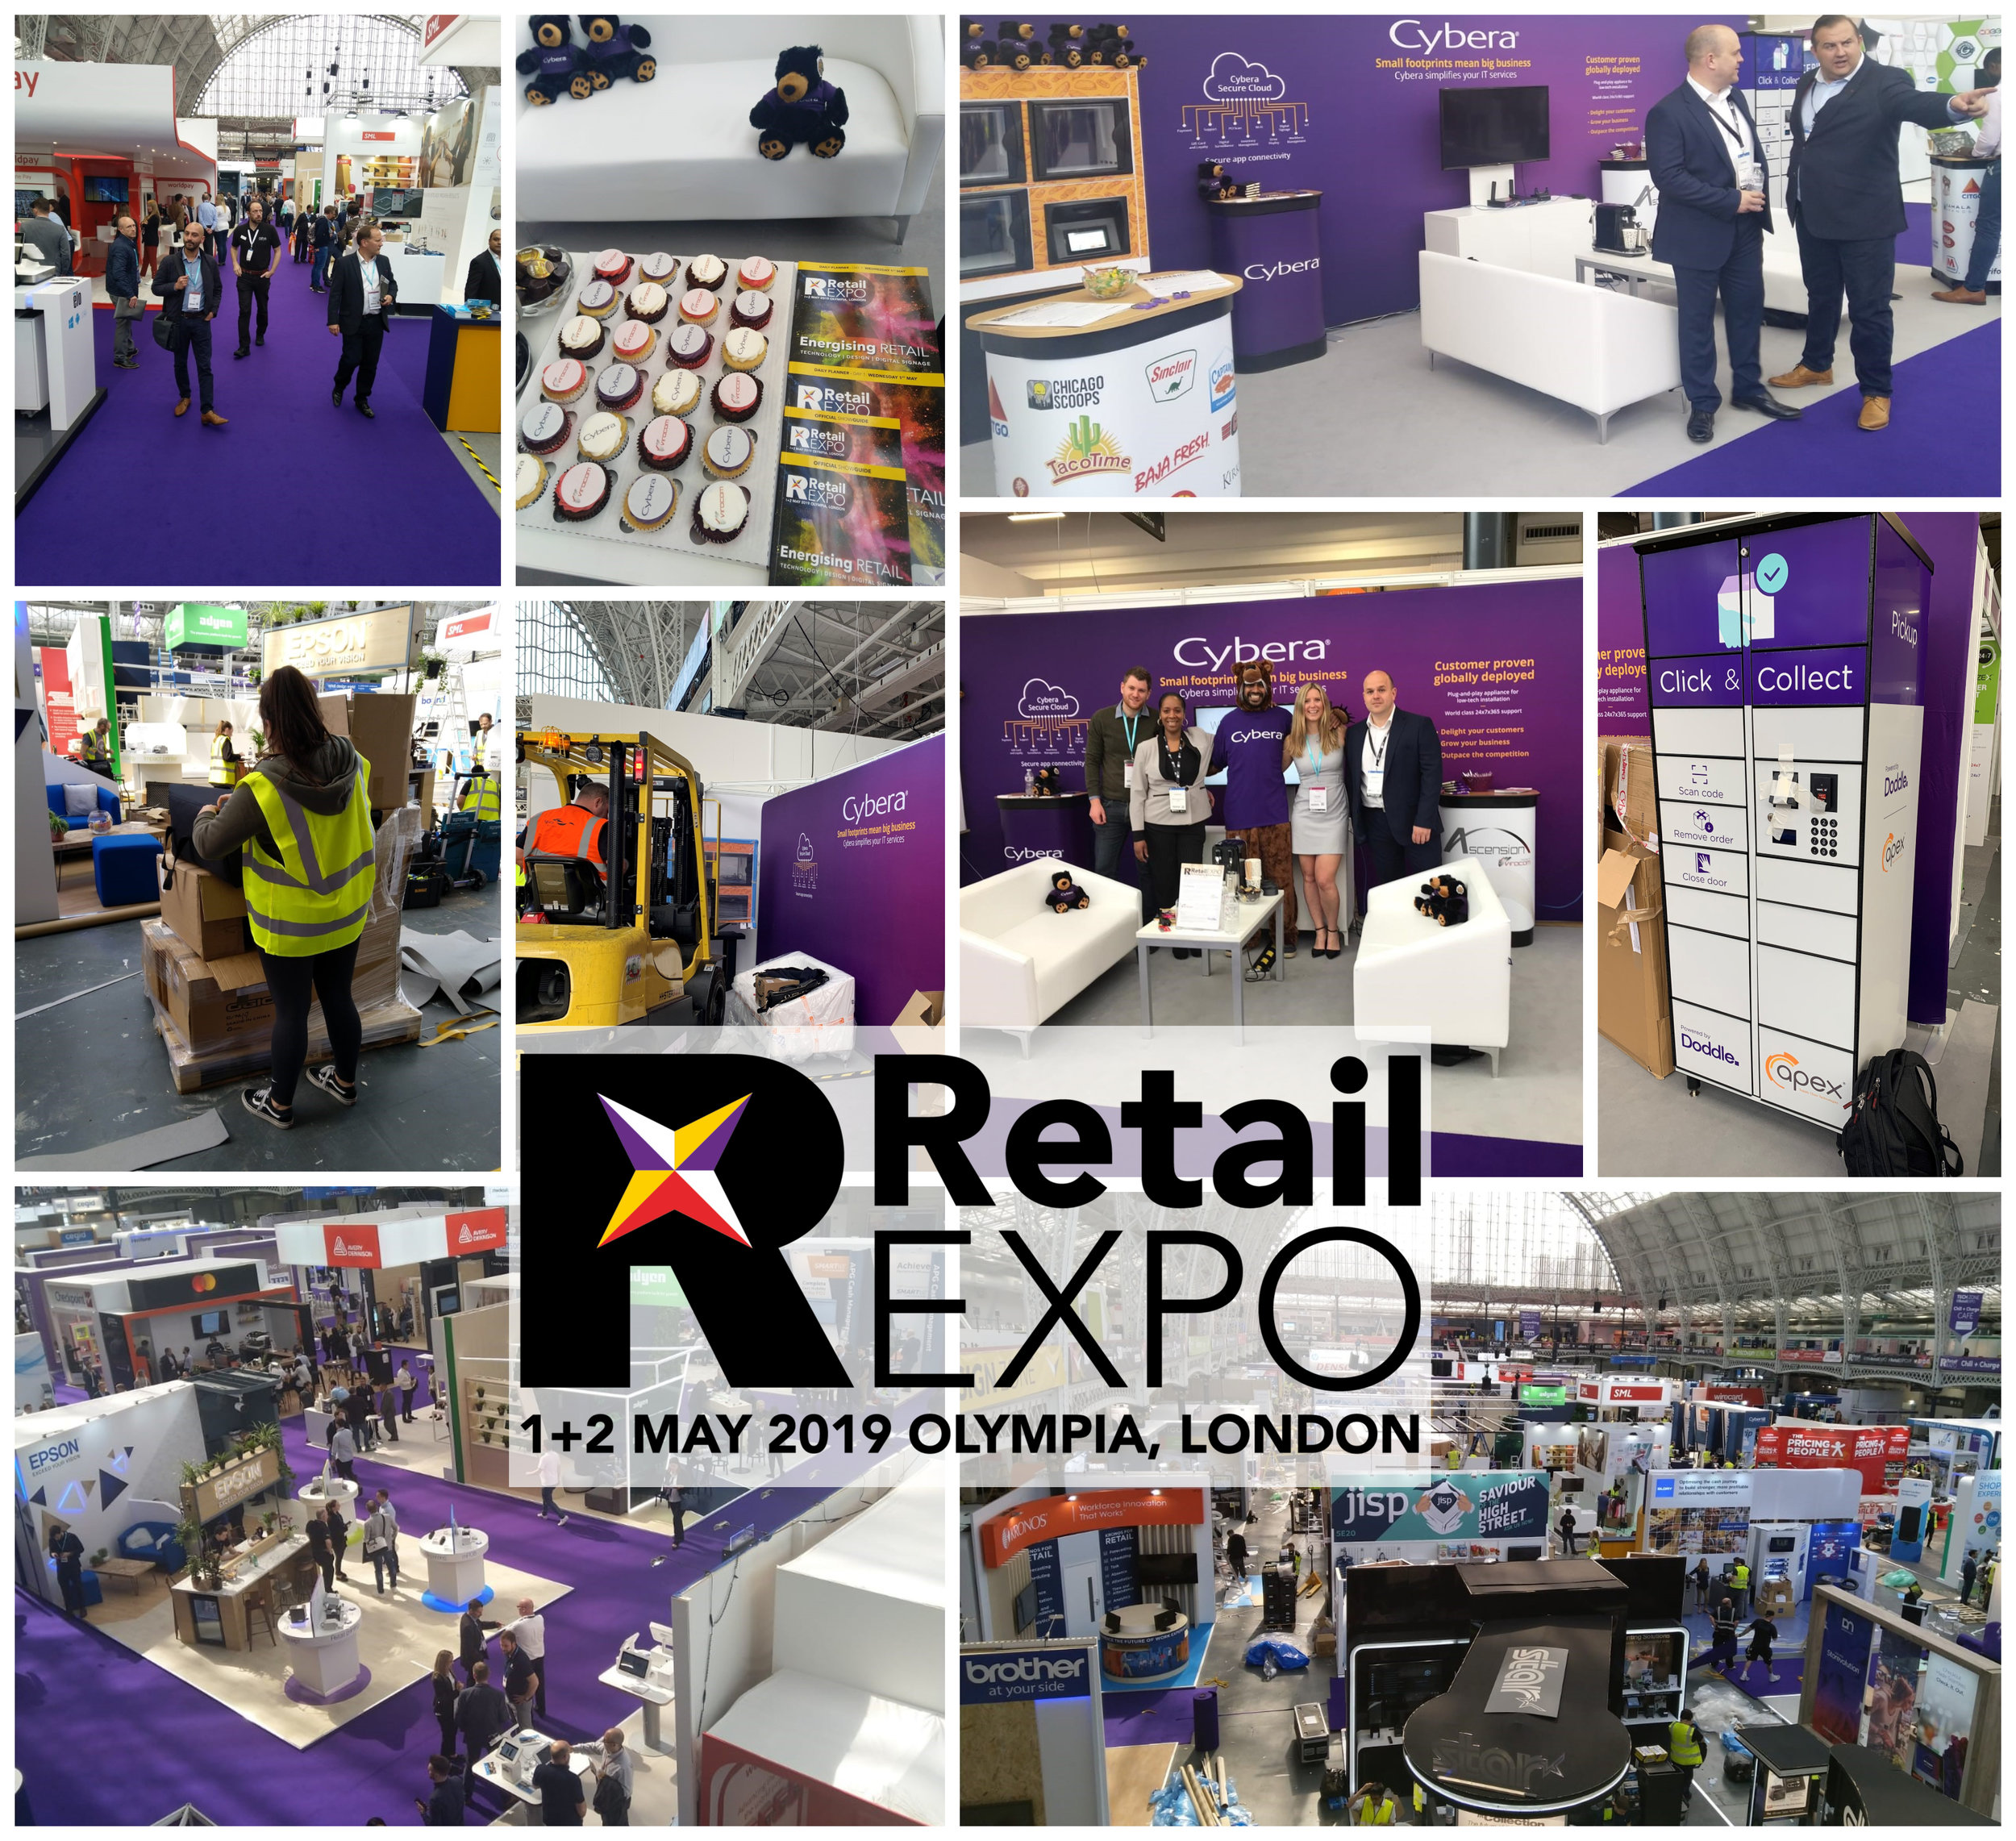 Retail Expo Collage.jpg